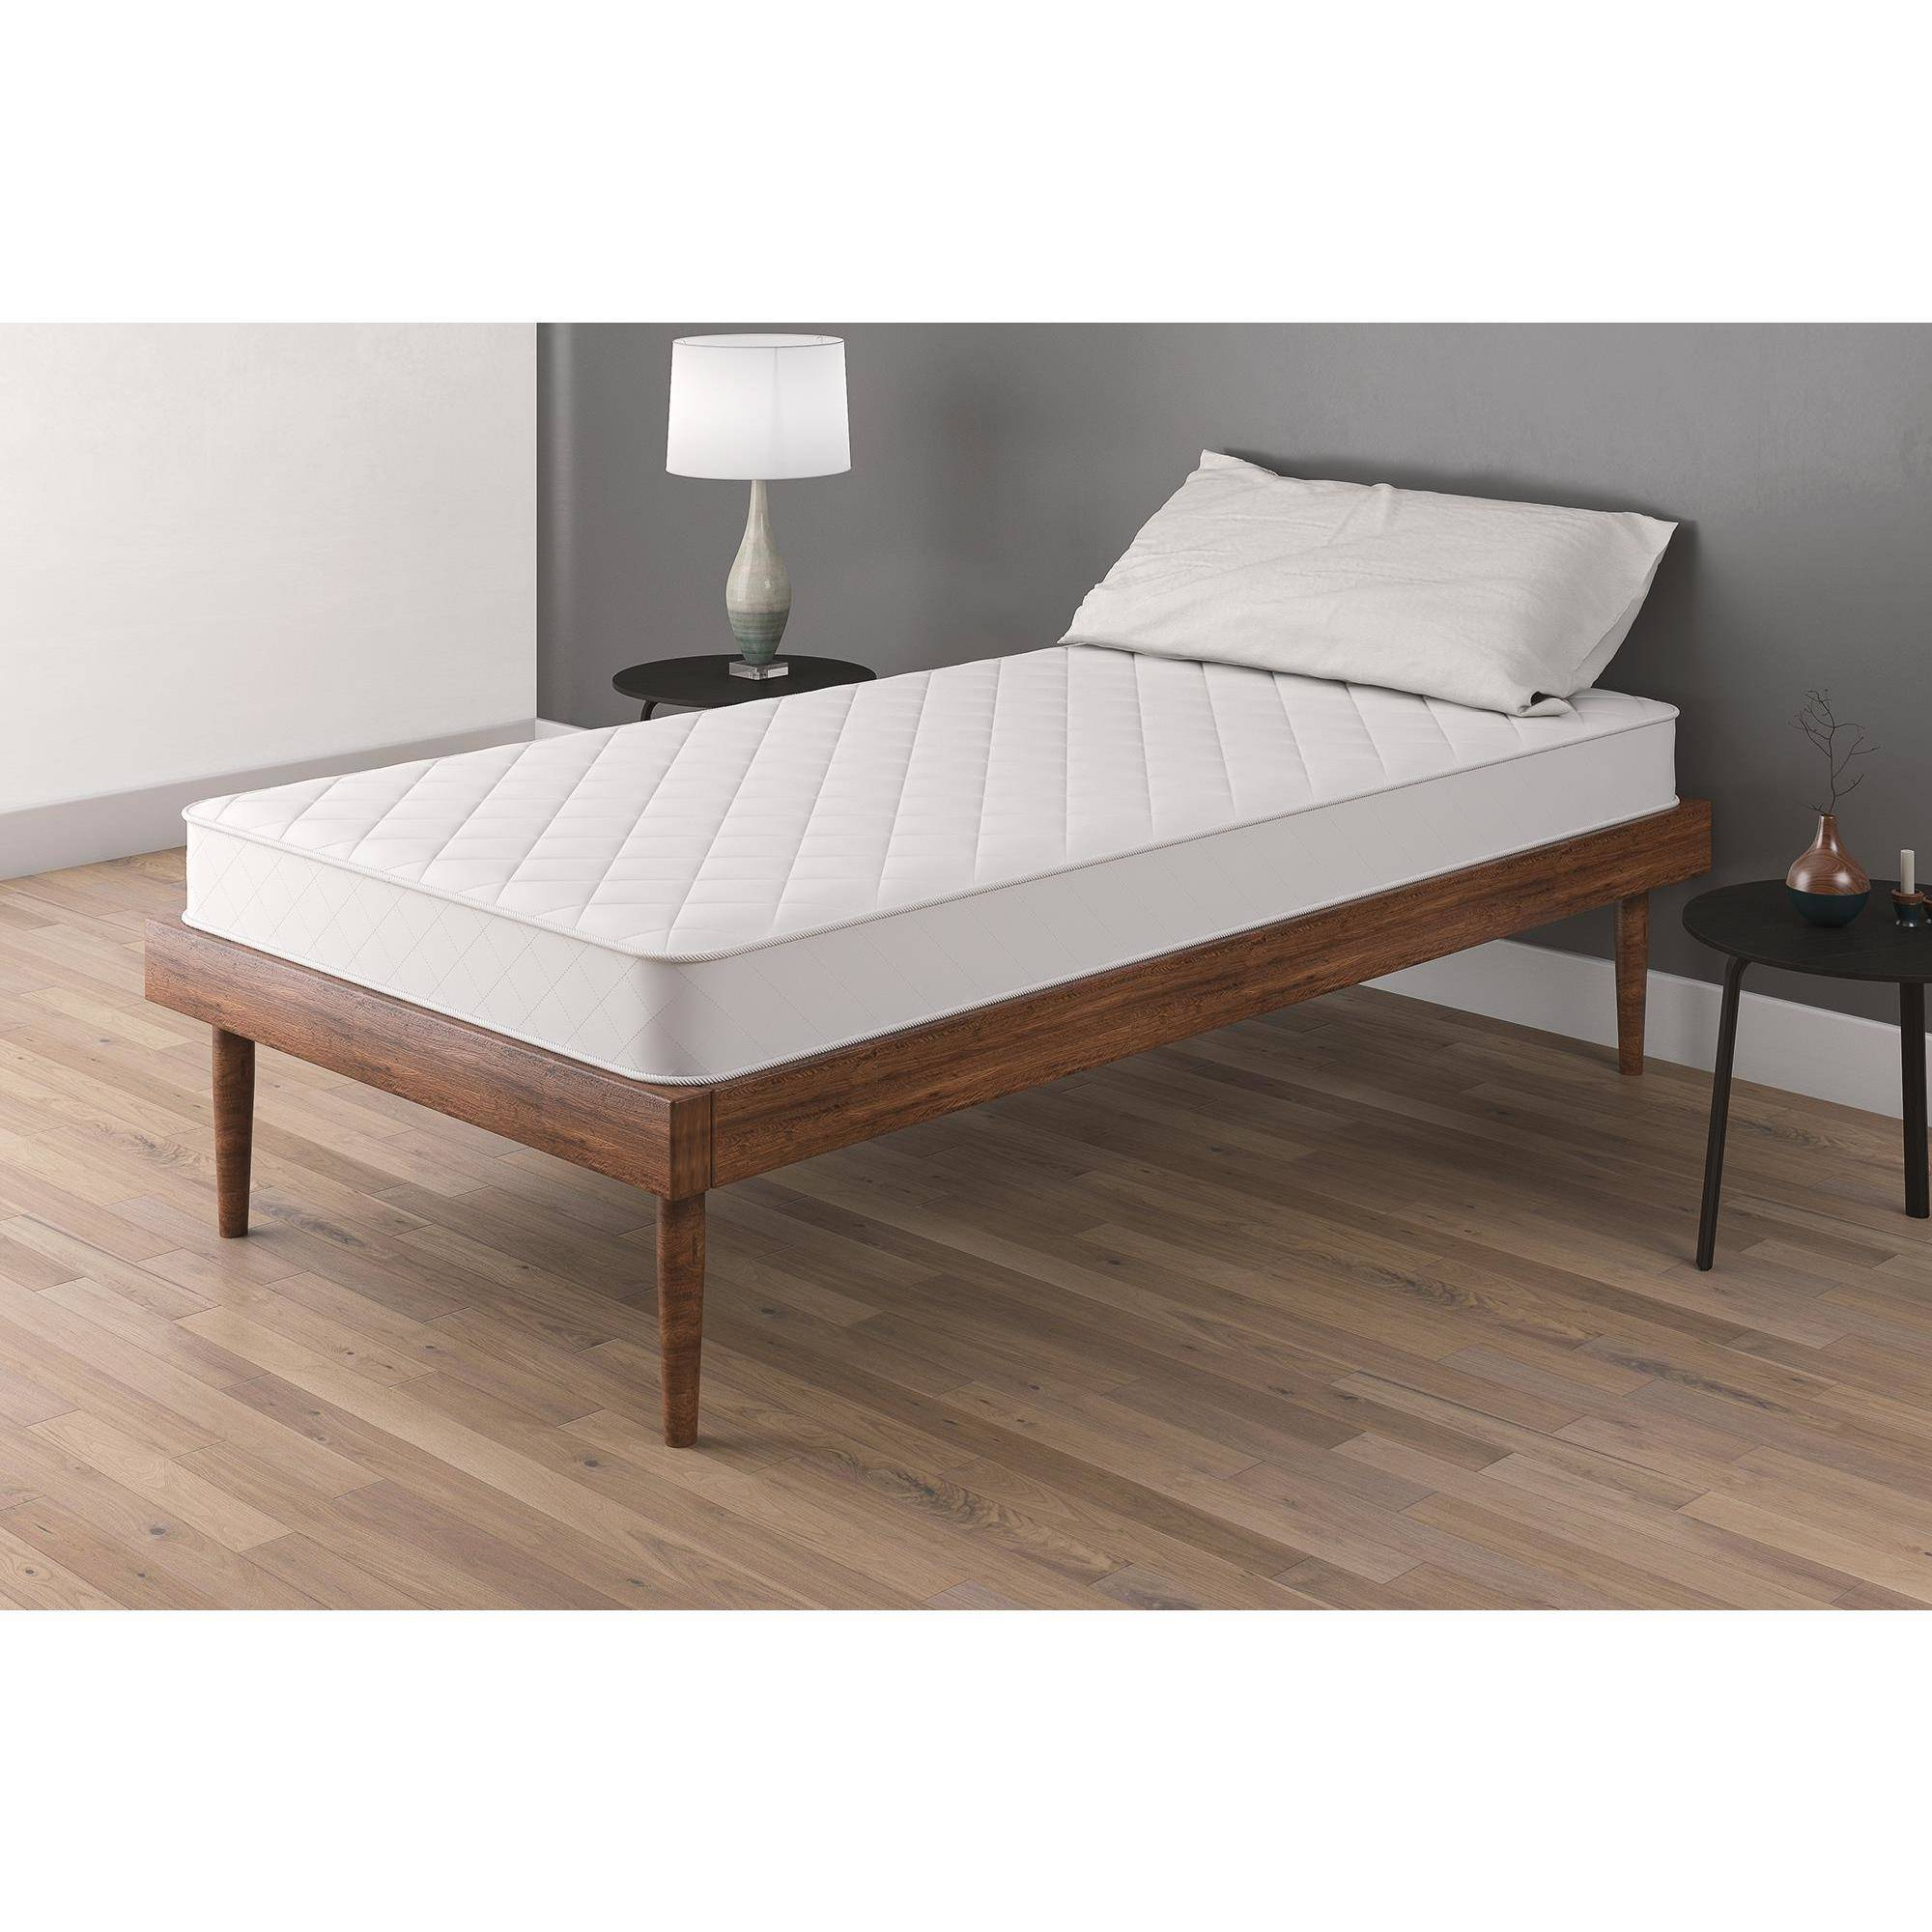 "Mainstays 6"" Bonnell Coil, Twin Mattress"